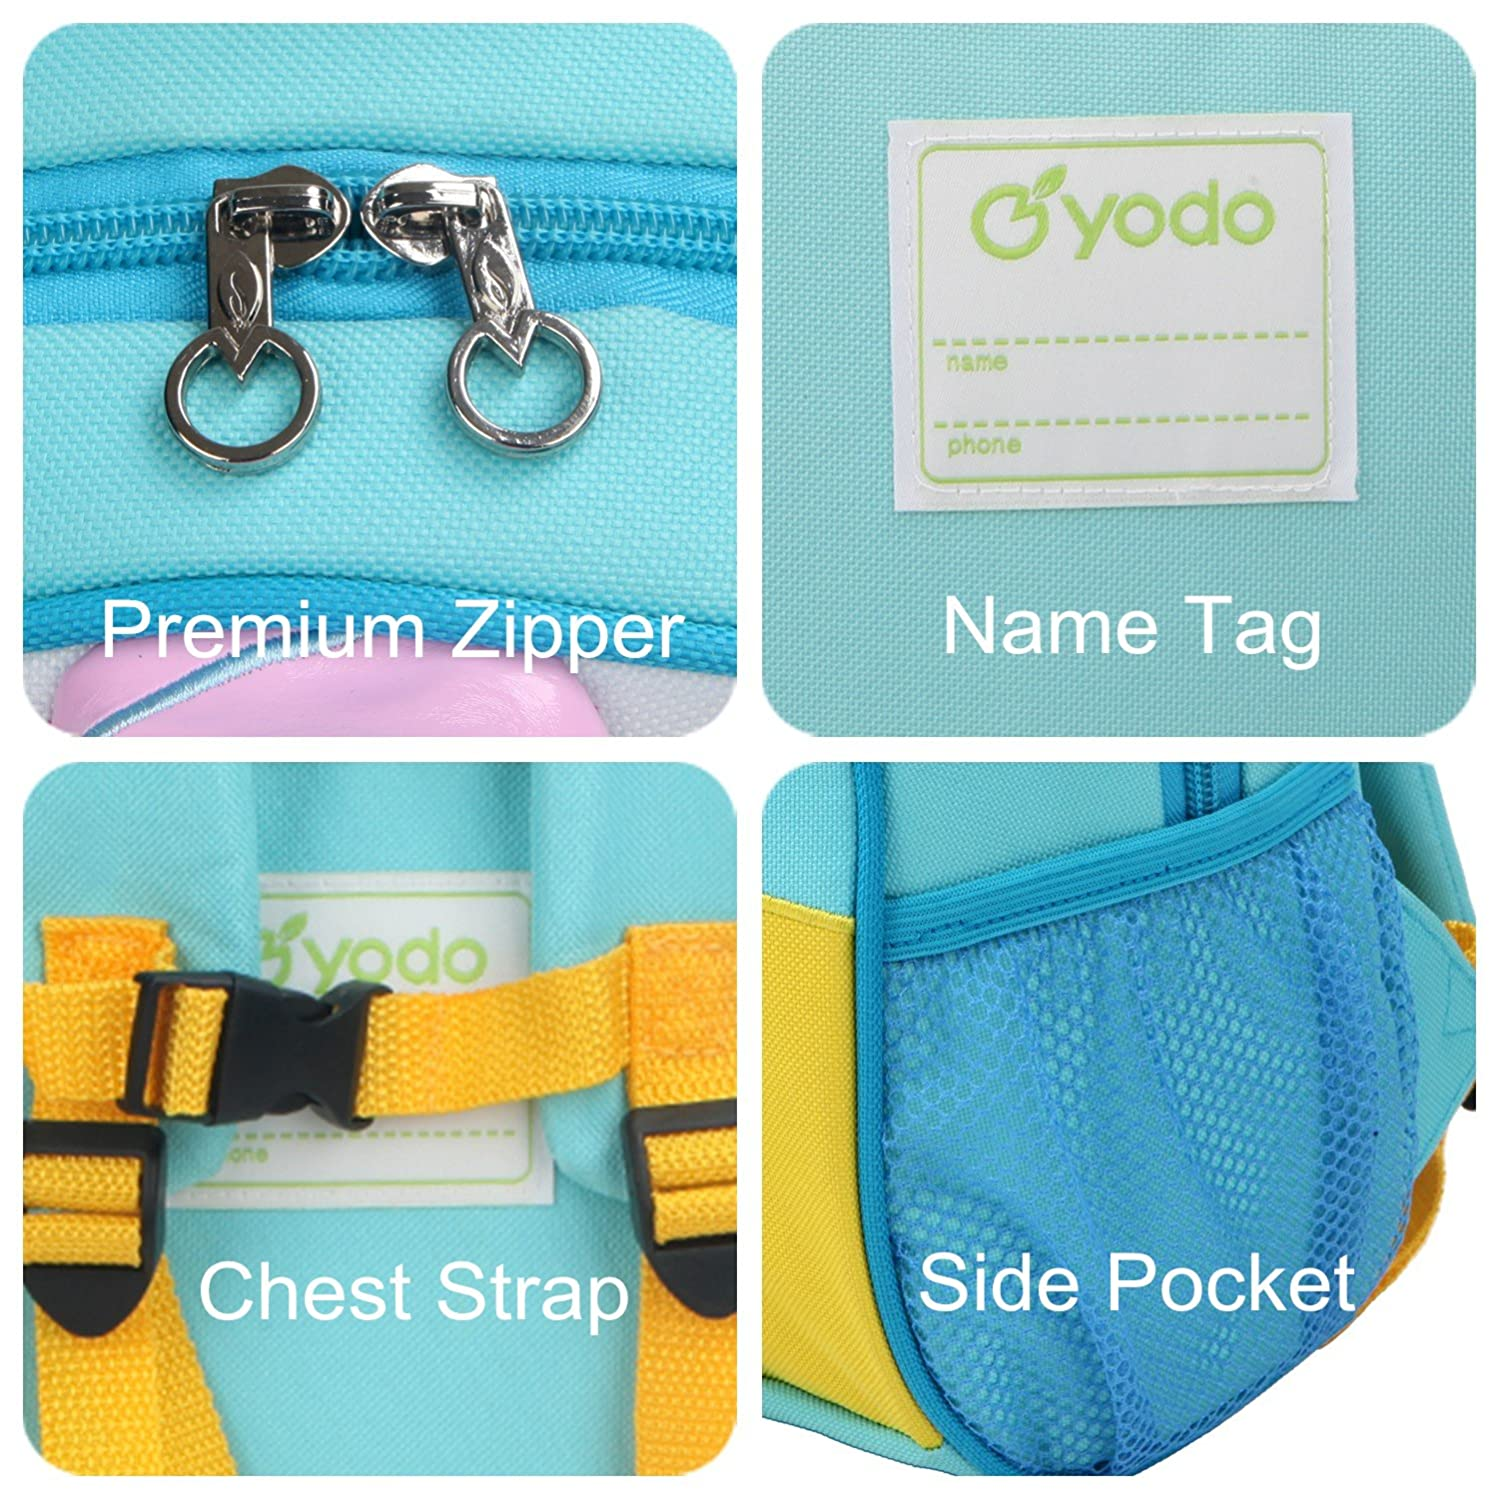 Shark Playful Preschool Kids Lunch Bag Yodo Upgraded Kids Insulated Toddler Backpack with Safety Harness Leash and Name Label